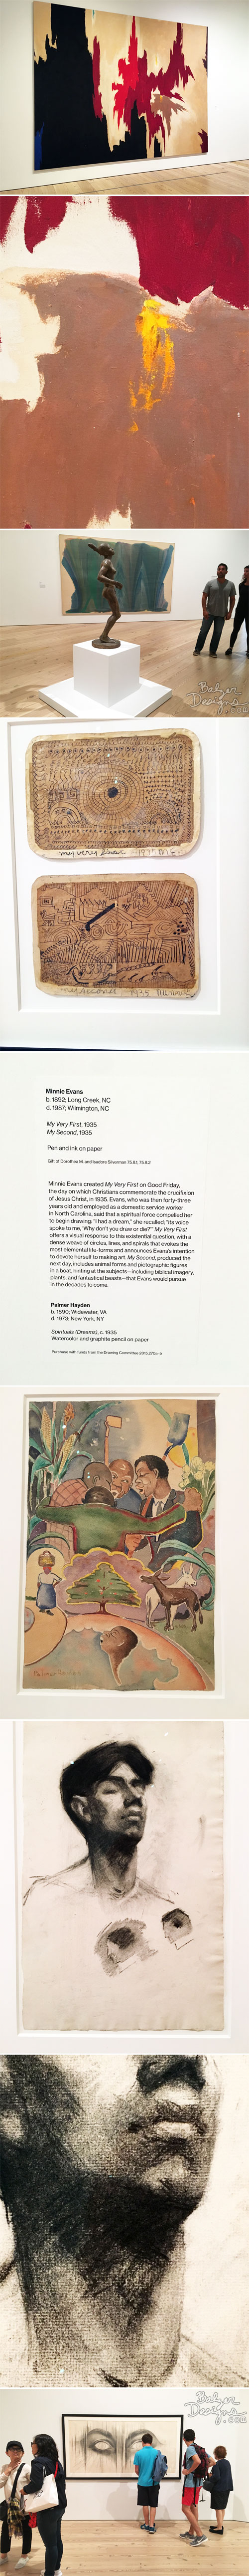 From the Balzer Designs Blog: July 2017 at the Whitney Museum